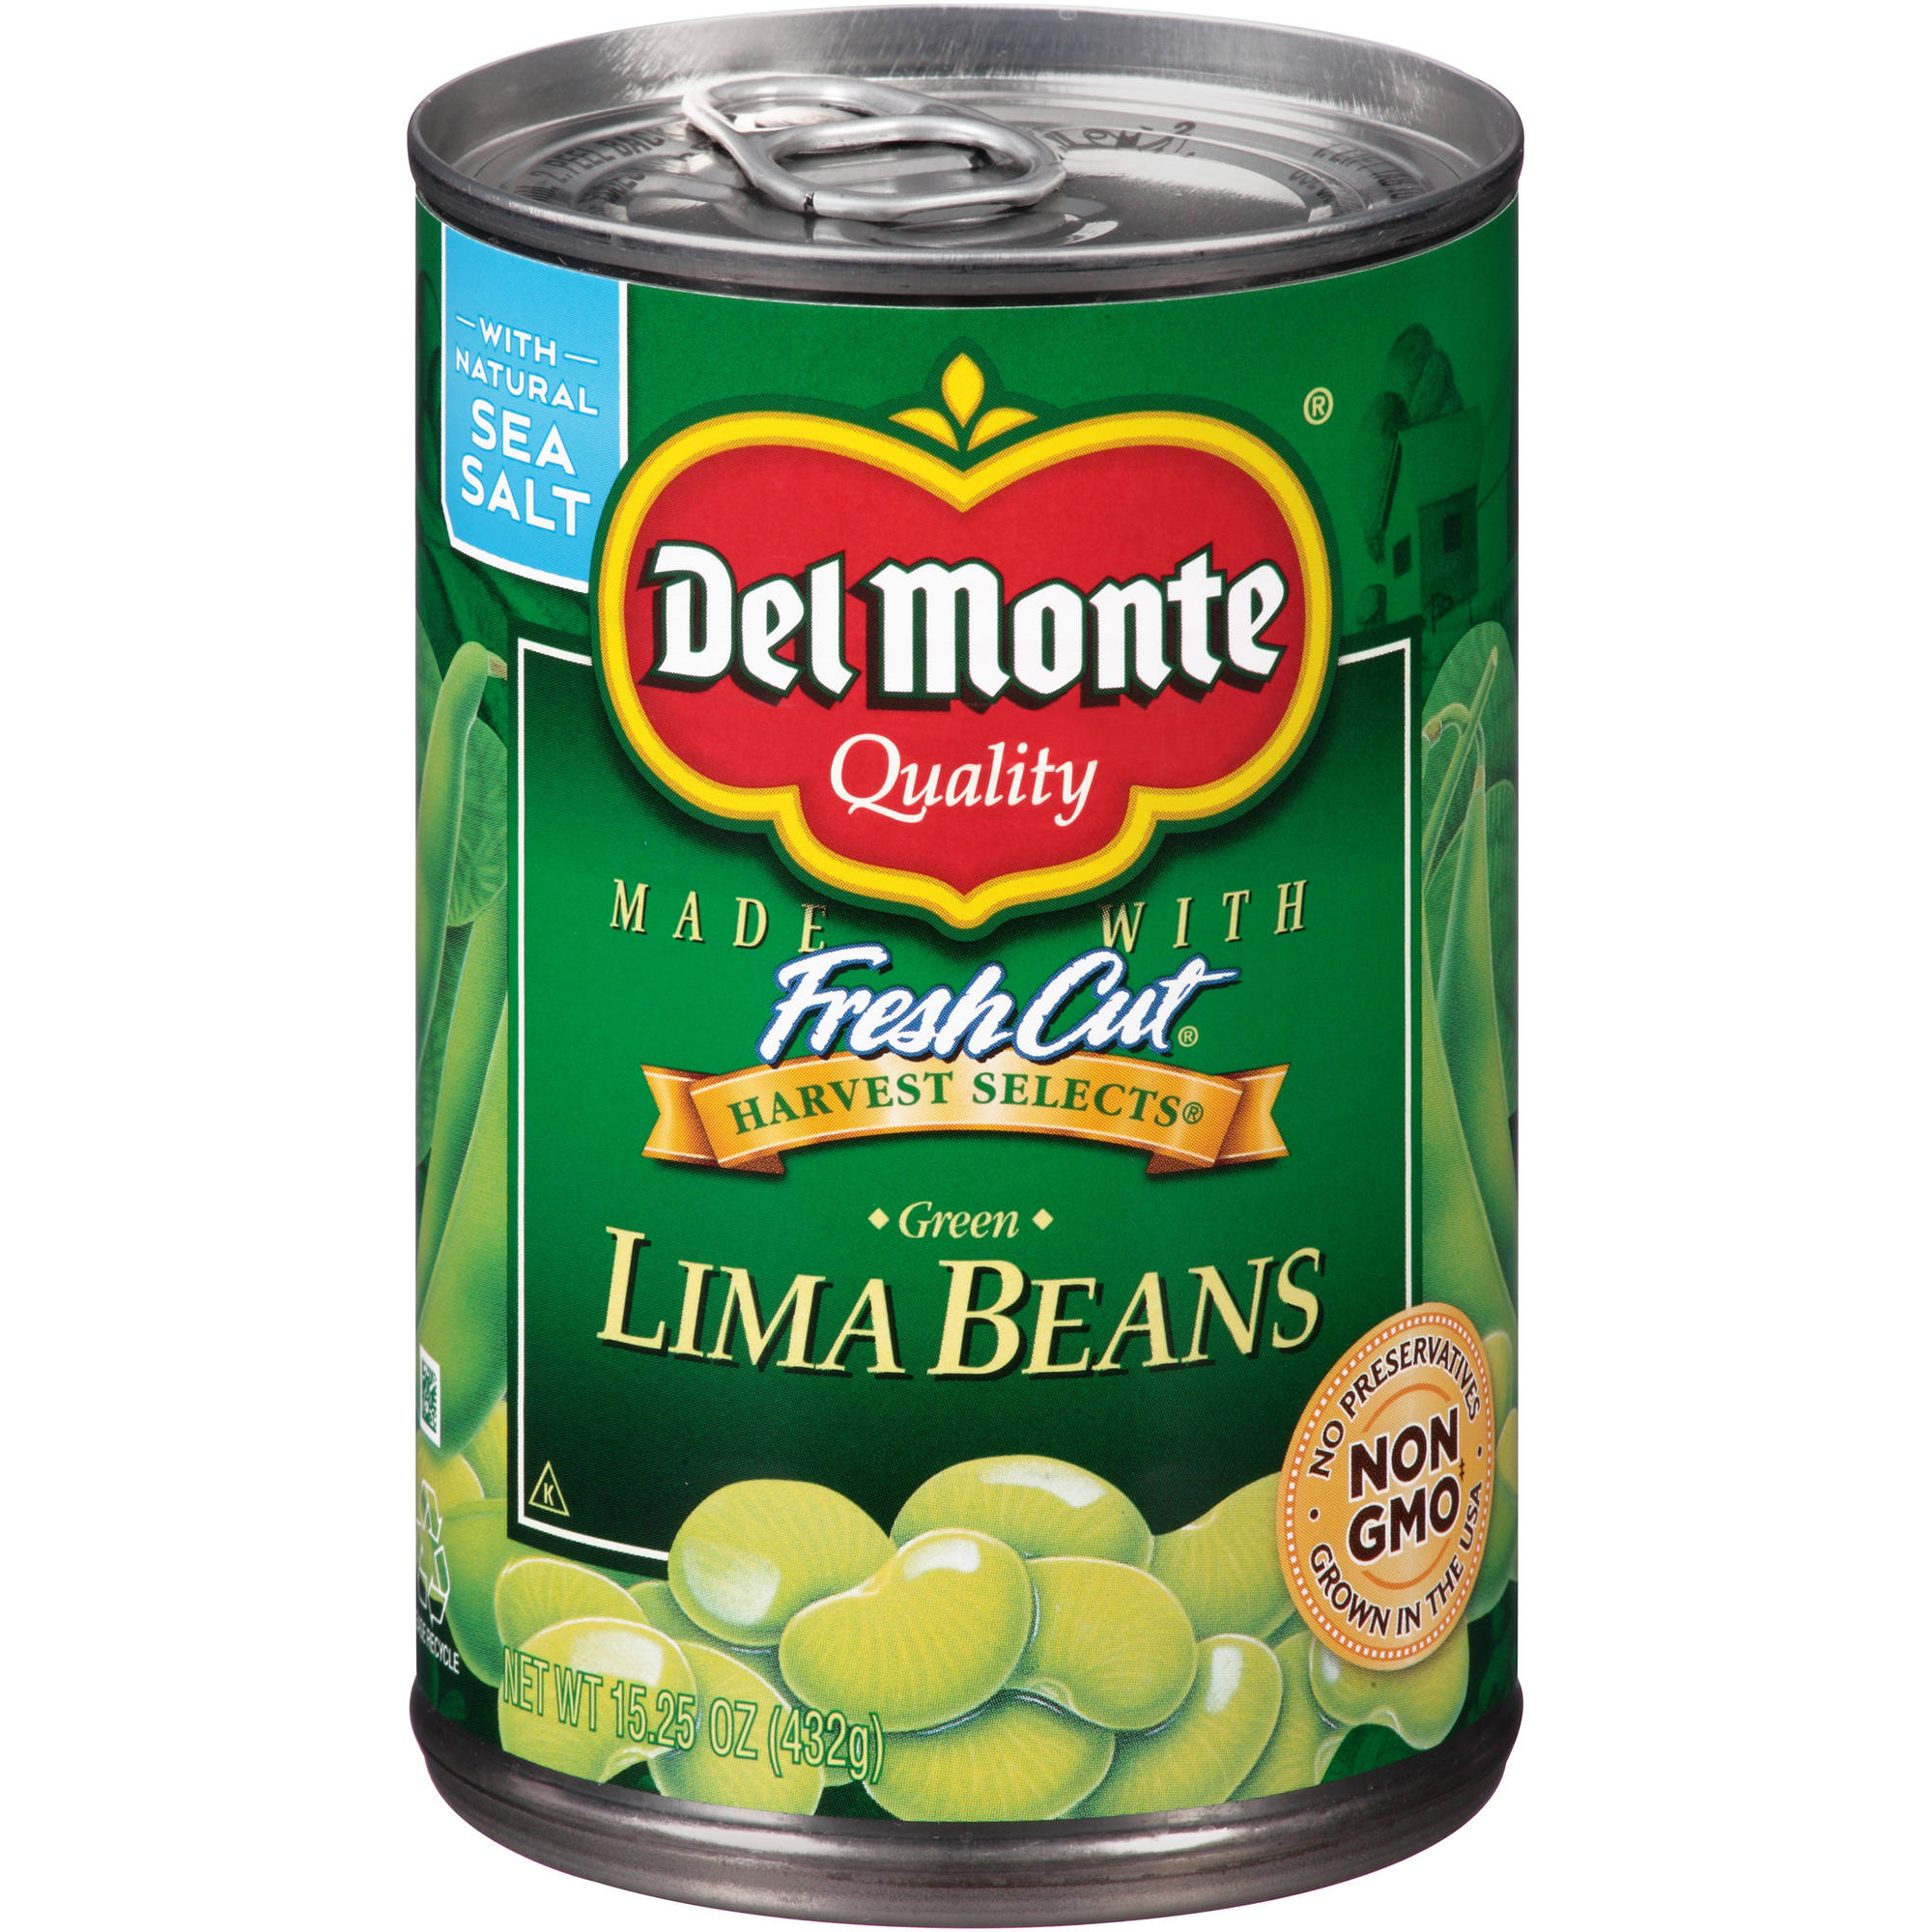 Del Monte Harvest Selects Green Lima Beans, 15.25 oz